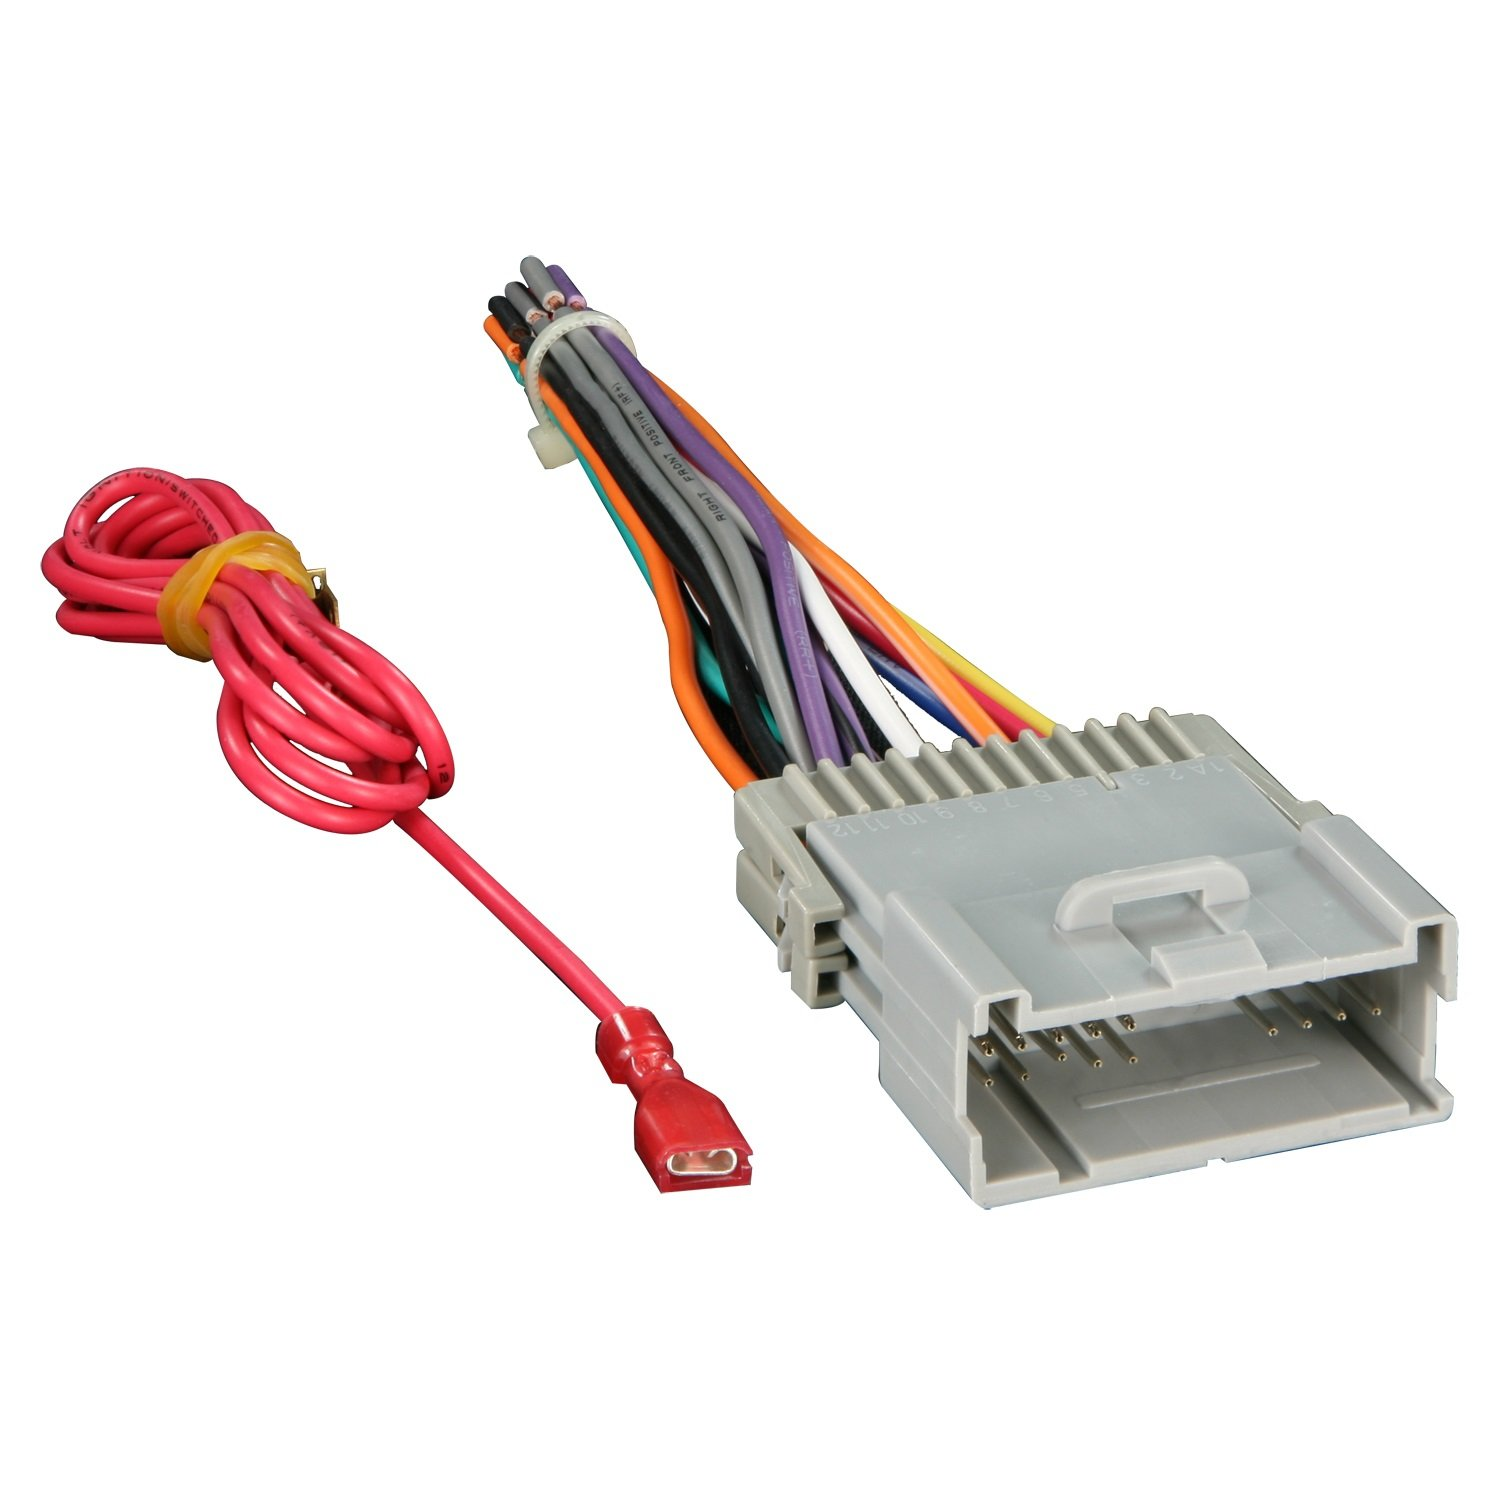 61eewxp9orL._SL1500_ amazon com metra 70 2003 radio wiring harness for gm 98 08 car audio wiring harness at nearapp.co